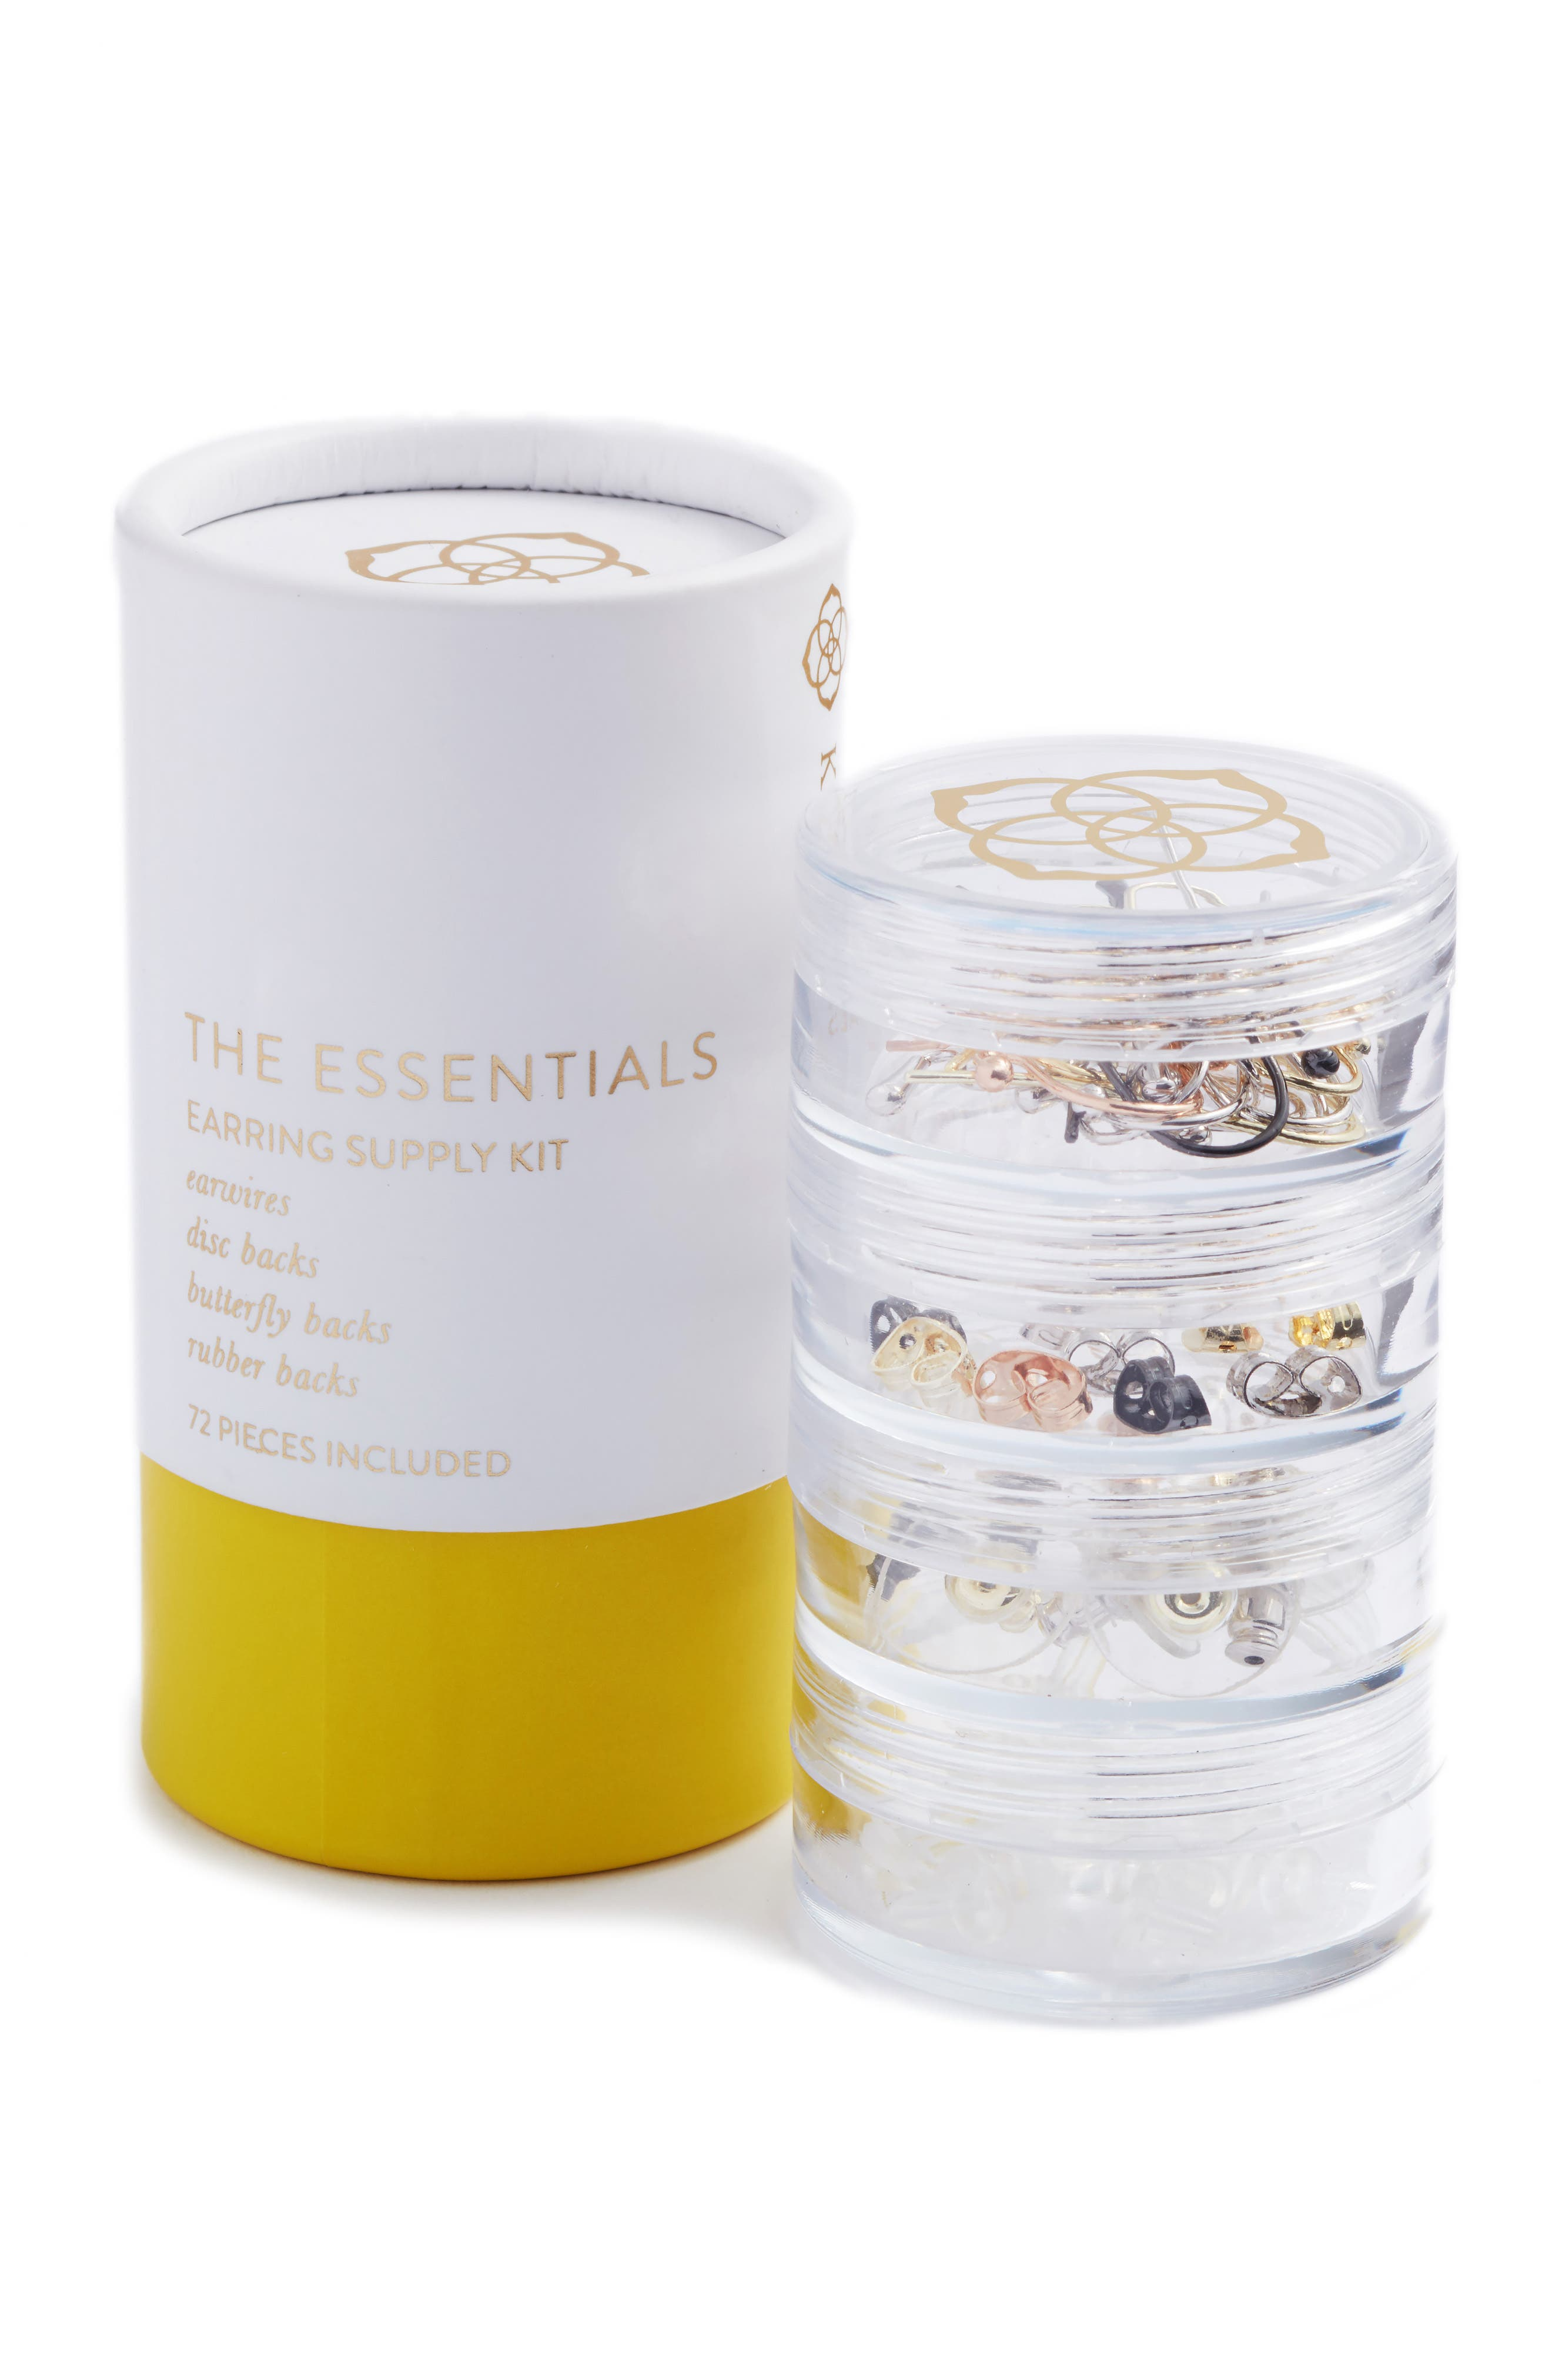 Alternate Image 1 Selected - Kendra Scott The Essentials Earring Supply Kit